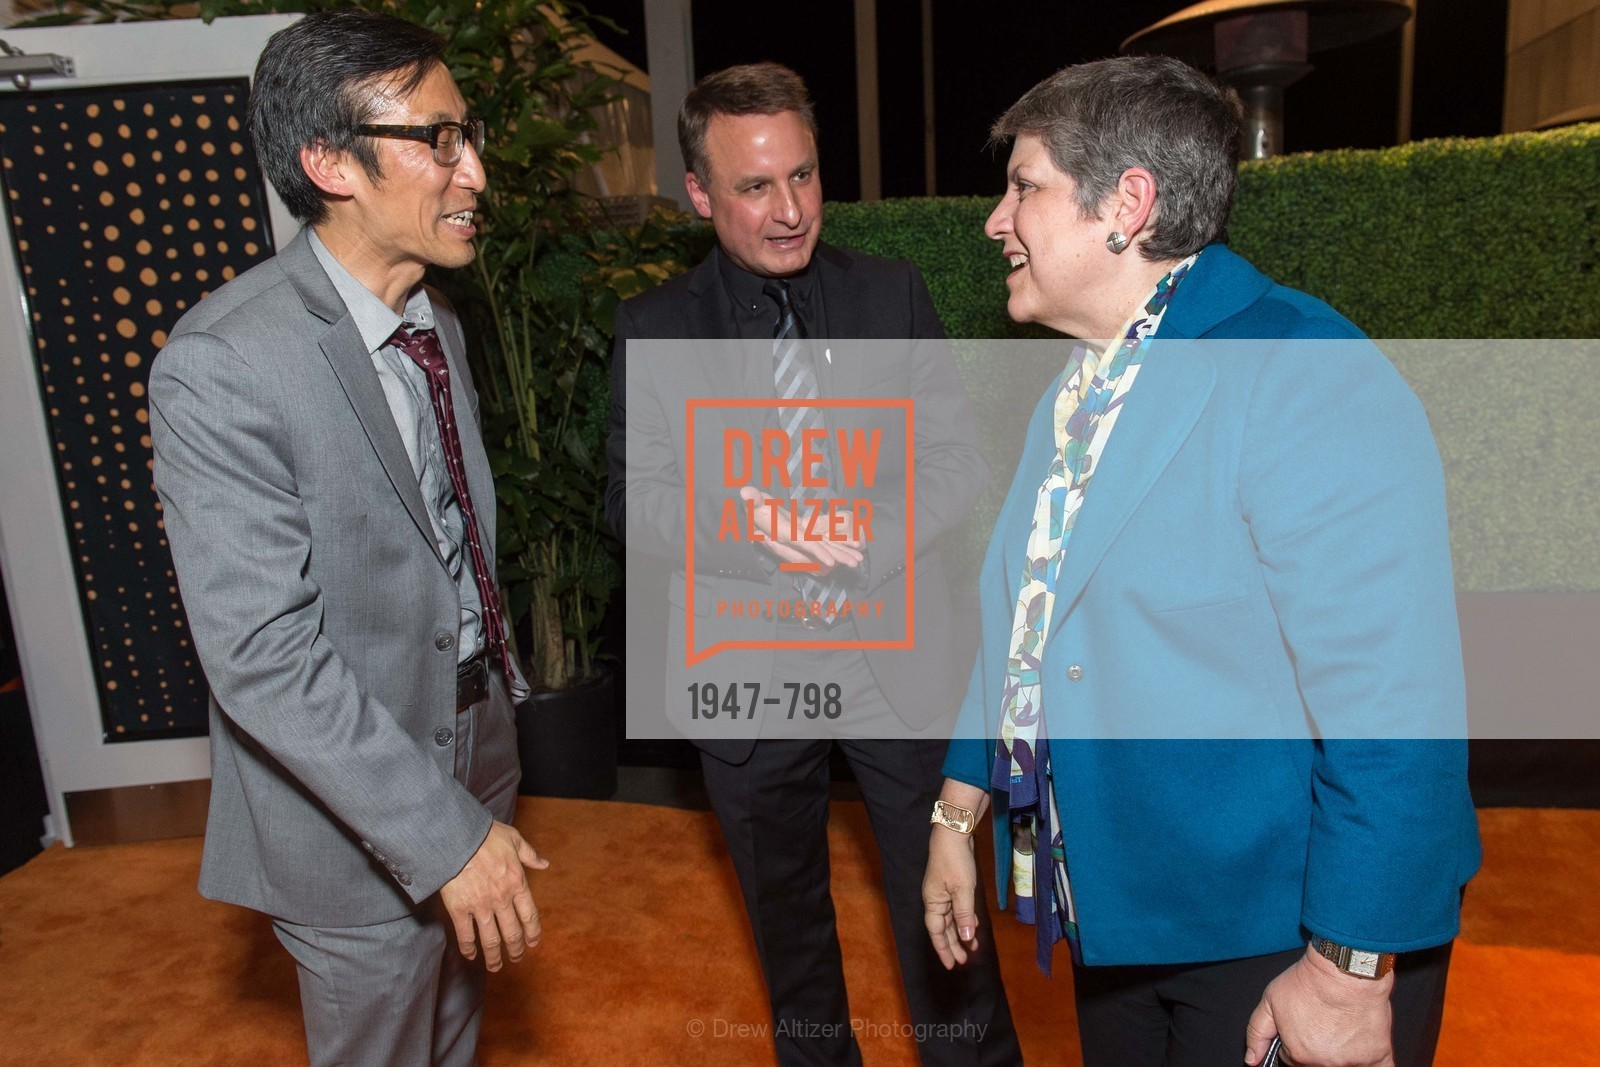 Supervisor Eric Mar, Jon Foley, Janet Napolitano, CALIFORNIA ACADEMY OF SCIENCES - Big Bang Gala 2015, US, April 23rd, 2015,Drew Altizer, Drew Altizer Photography, full-service agency, private events, San Francisco photographer, photographer california